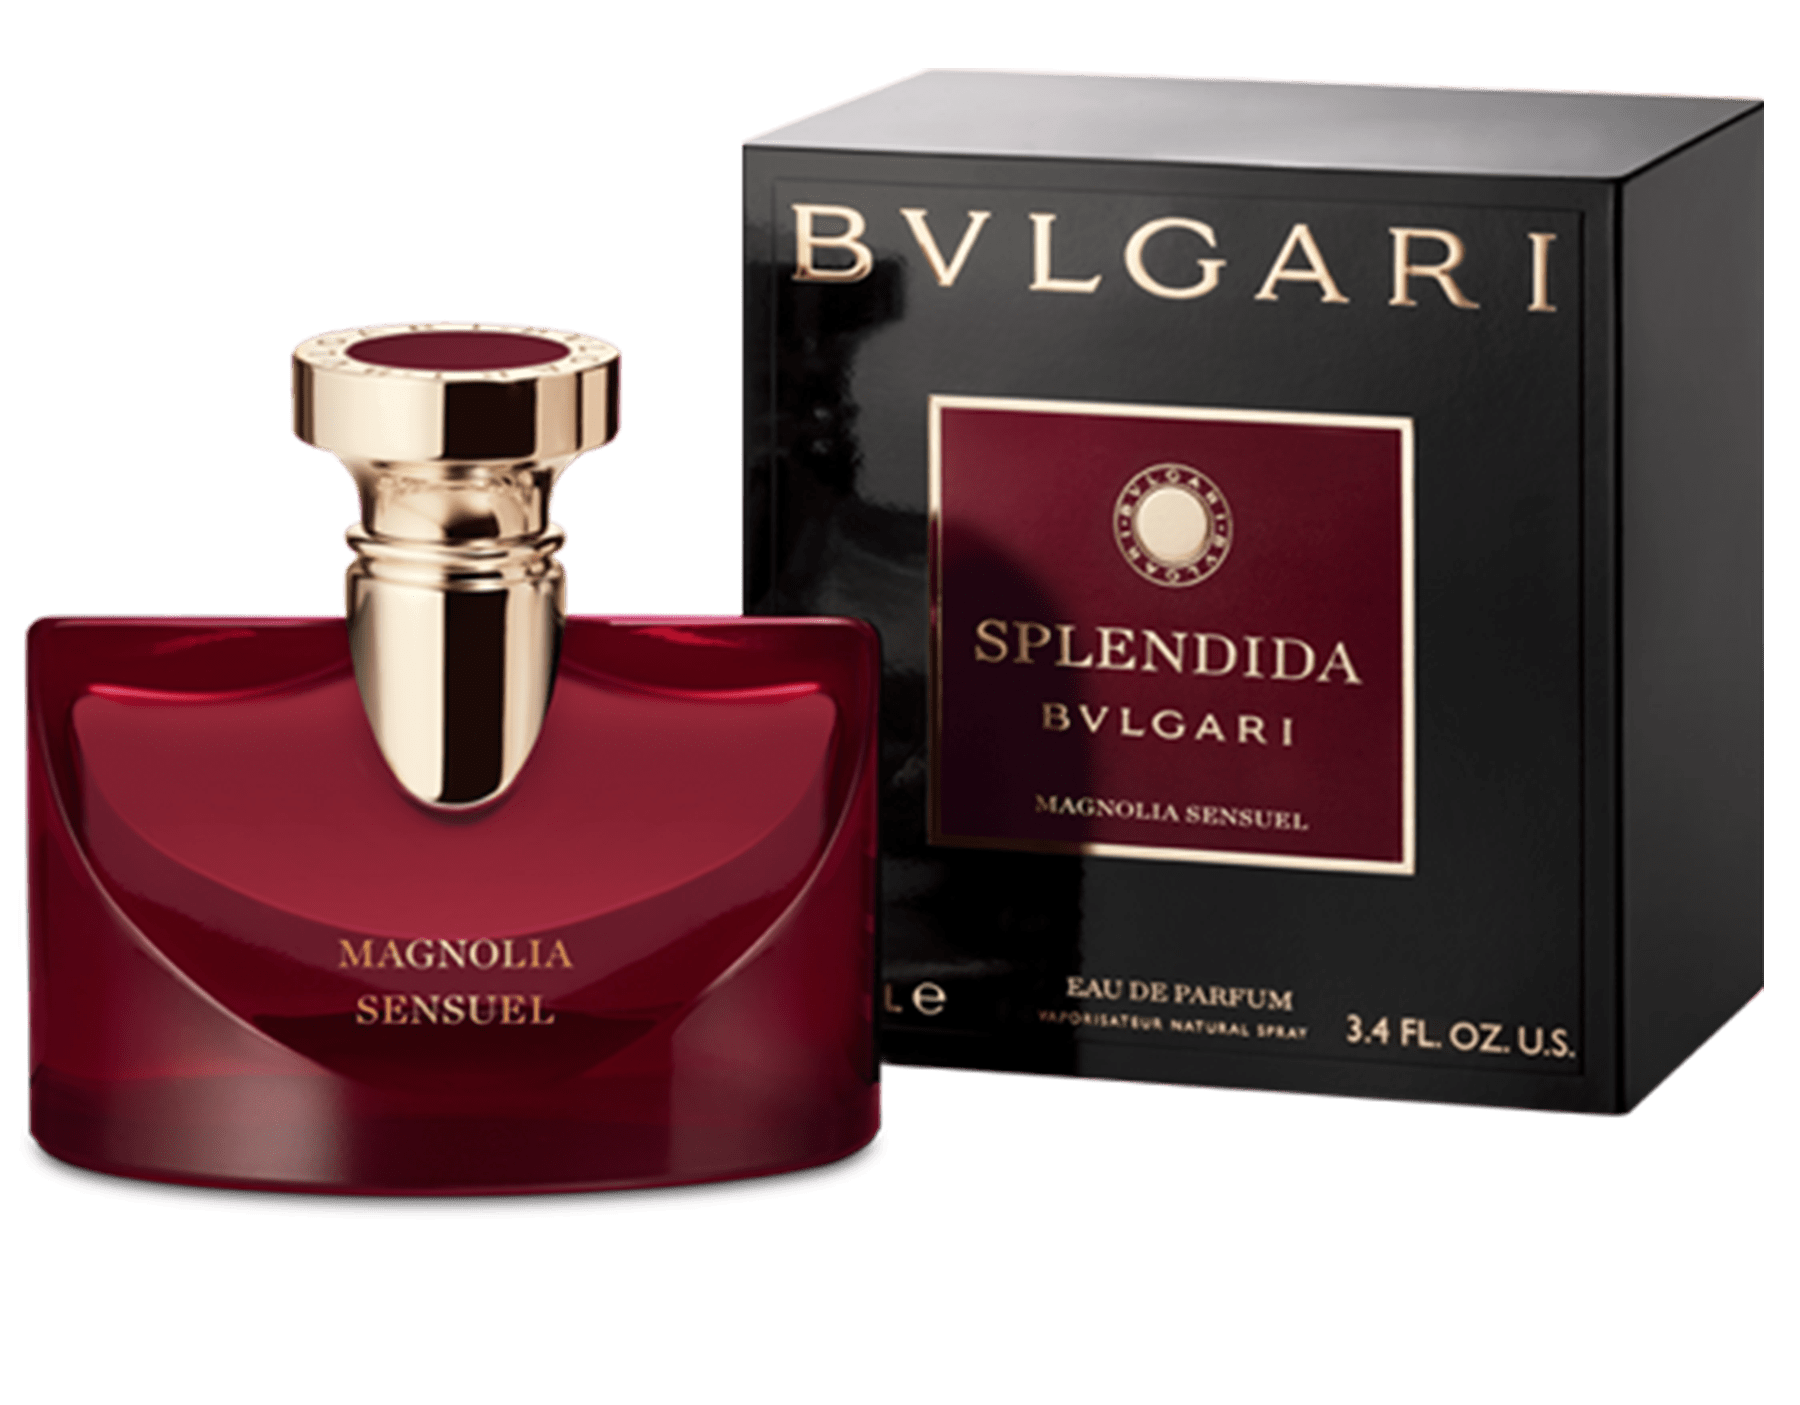 A generous and sensual fragrance building harmony around the delicate yet strong magnolia flower, the ultimate symbol of feminine beauty 97734 image 2